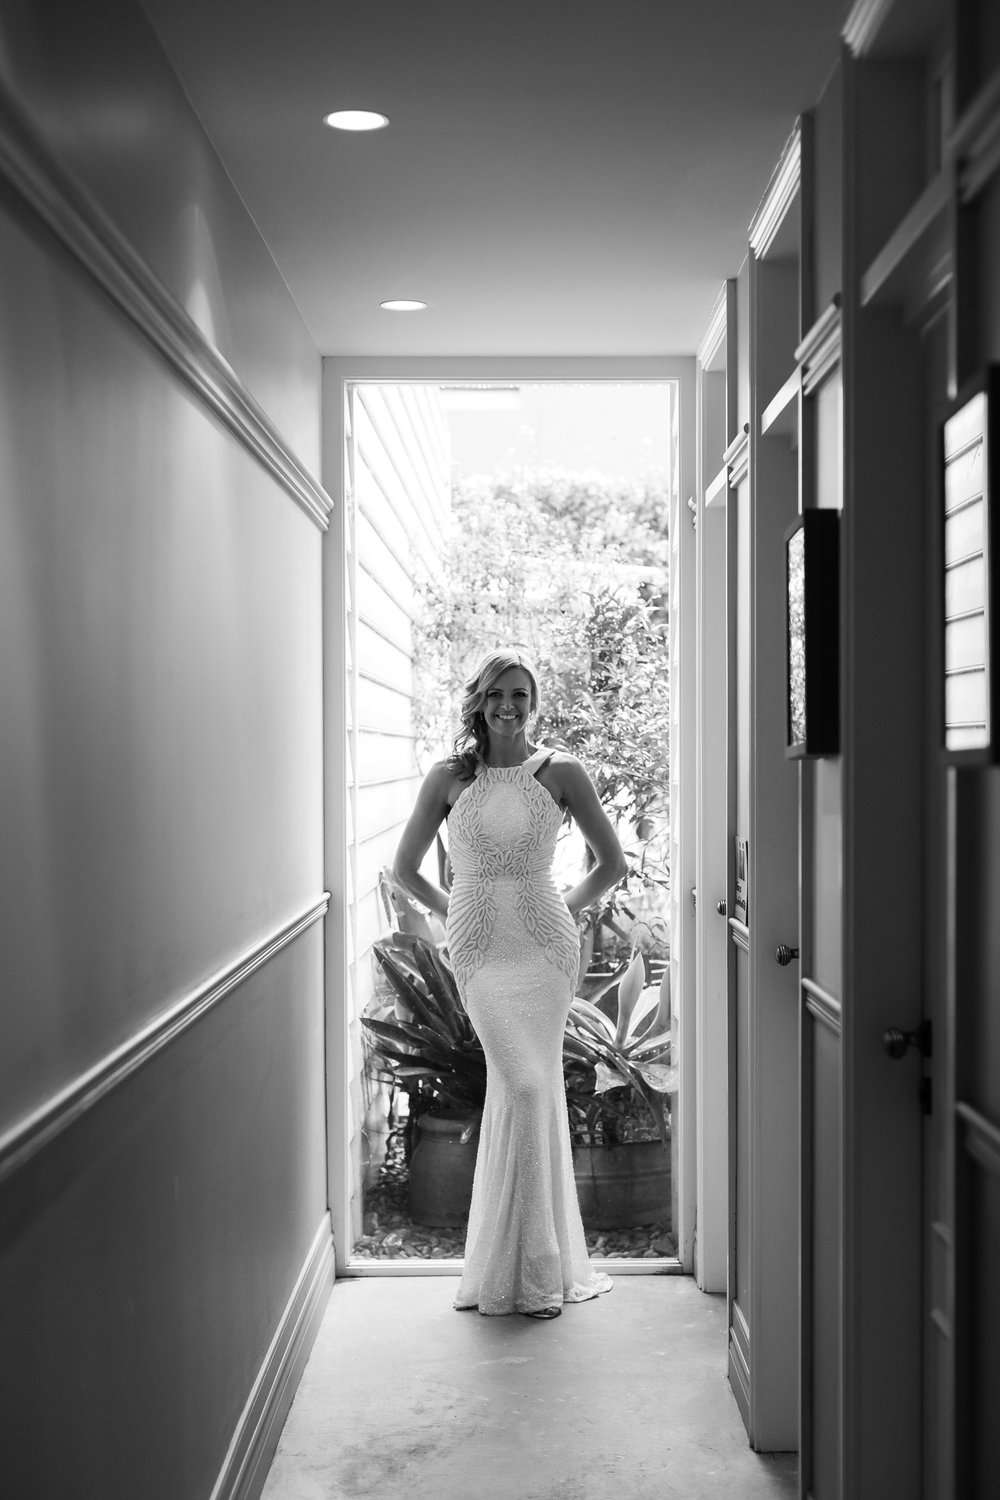 Smiling bride in a window. Black and white photo of bride. Chiswick restaurant wedding.